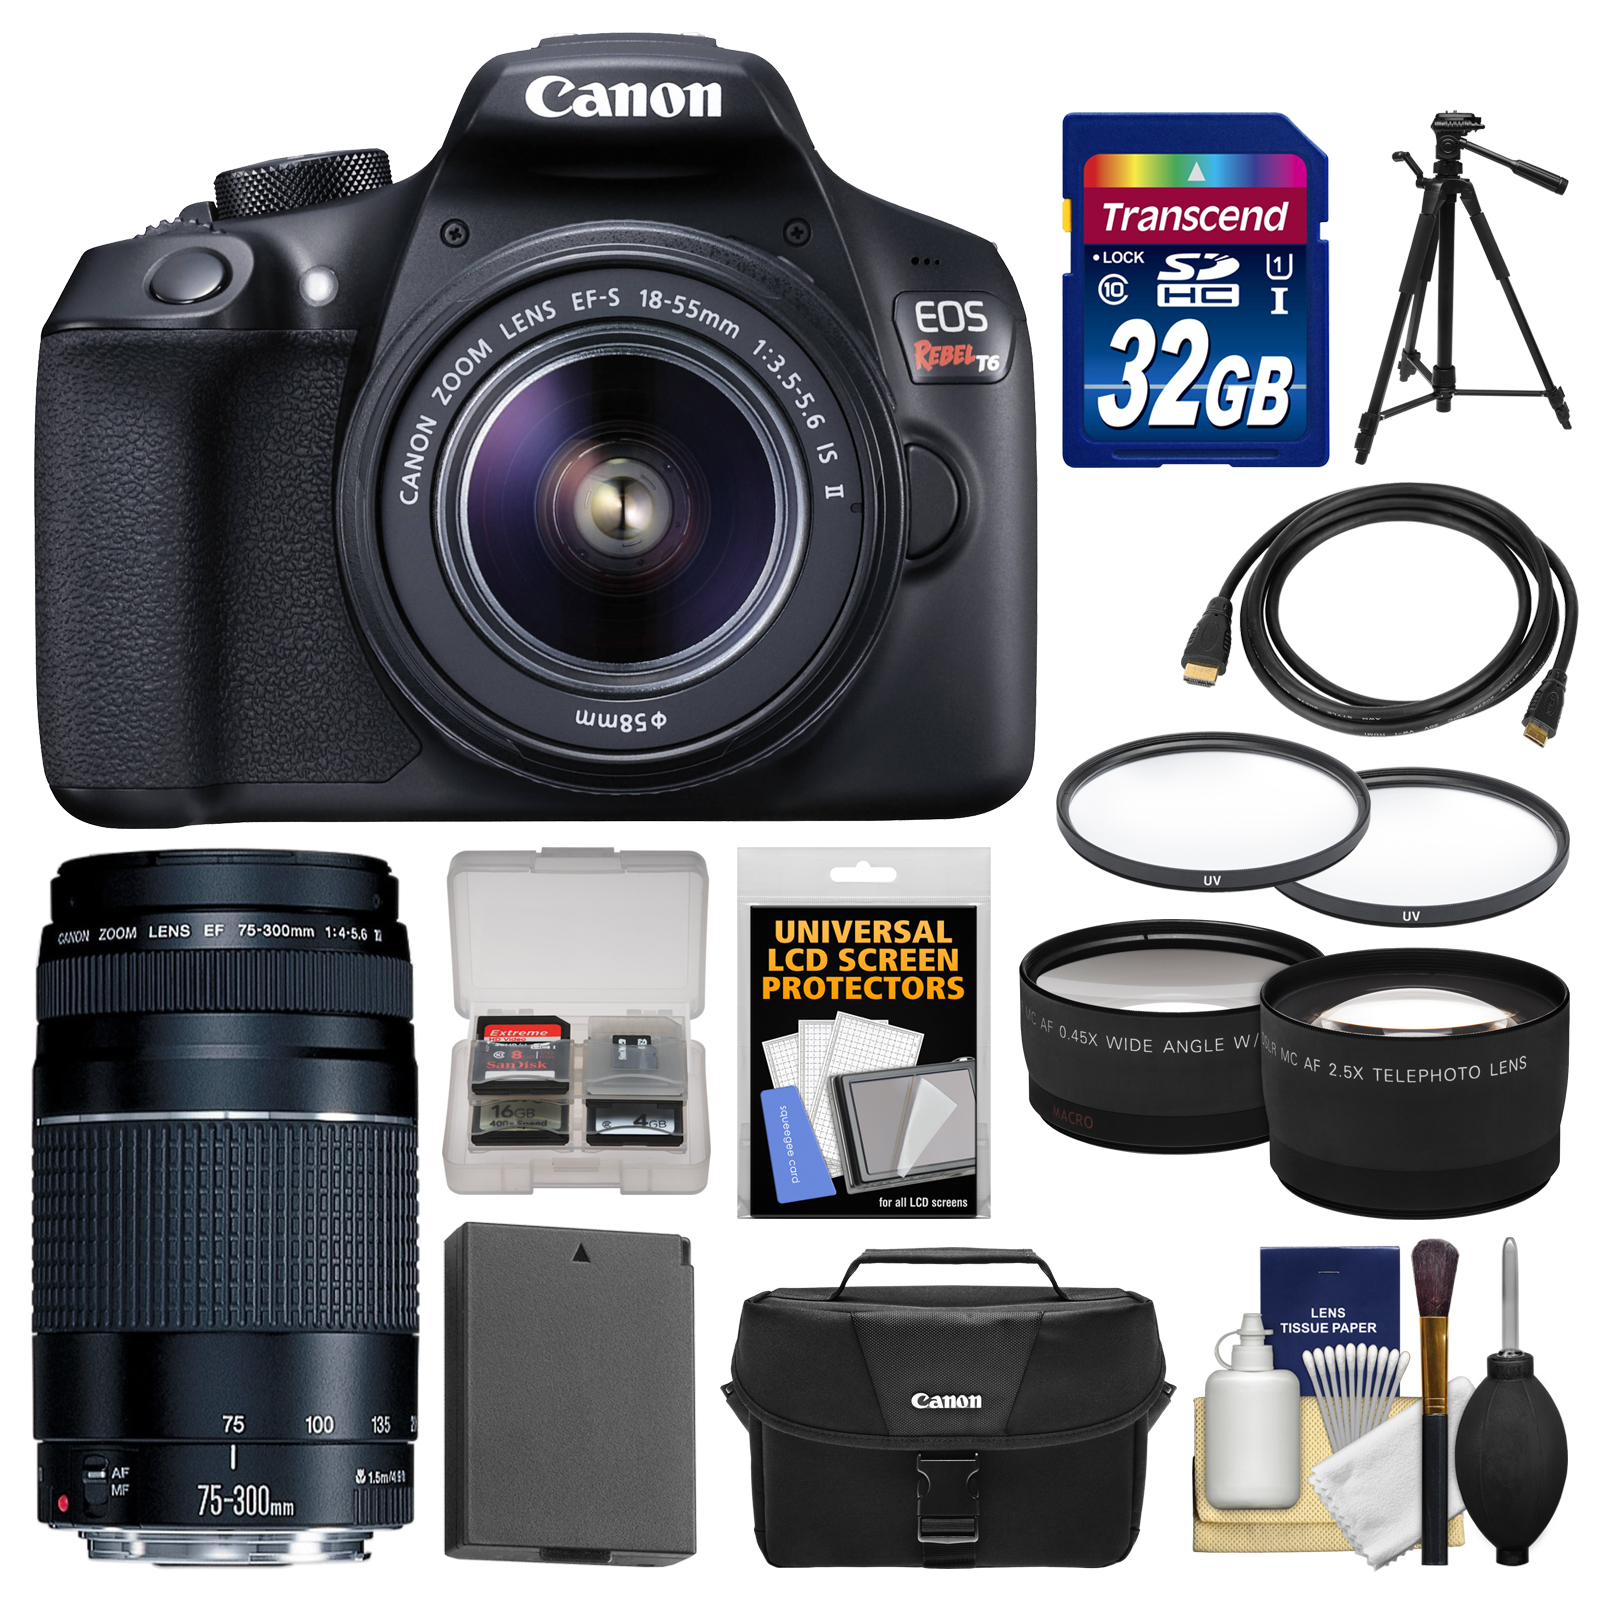 Canon EOS Rebel T6 Wi-Fi Digital SLR Camera & EF-S 18-55mm IS II with 75-300mm III Lens + 32GB Card + Case + Battery + Tele/Wide Lens Kit